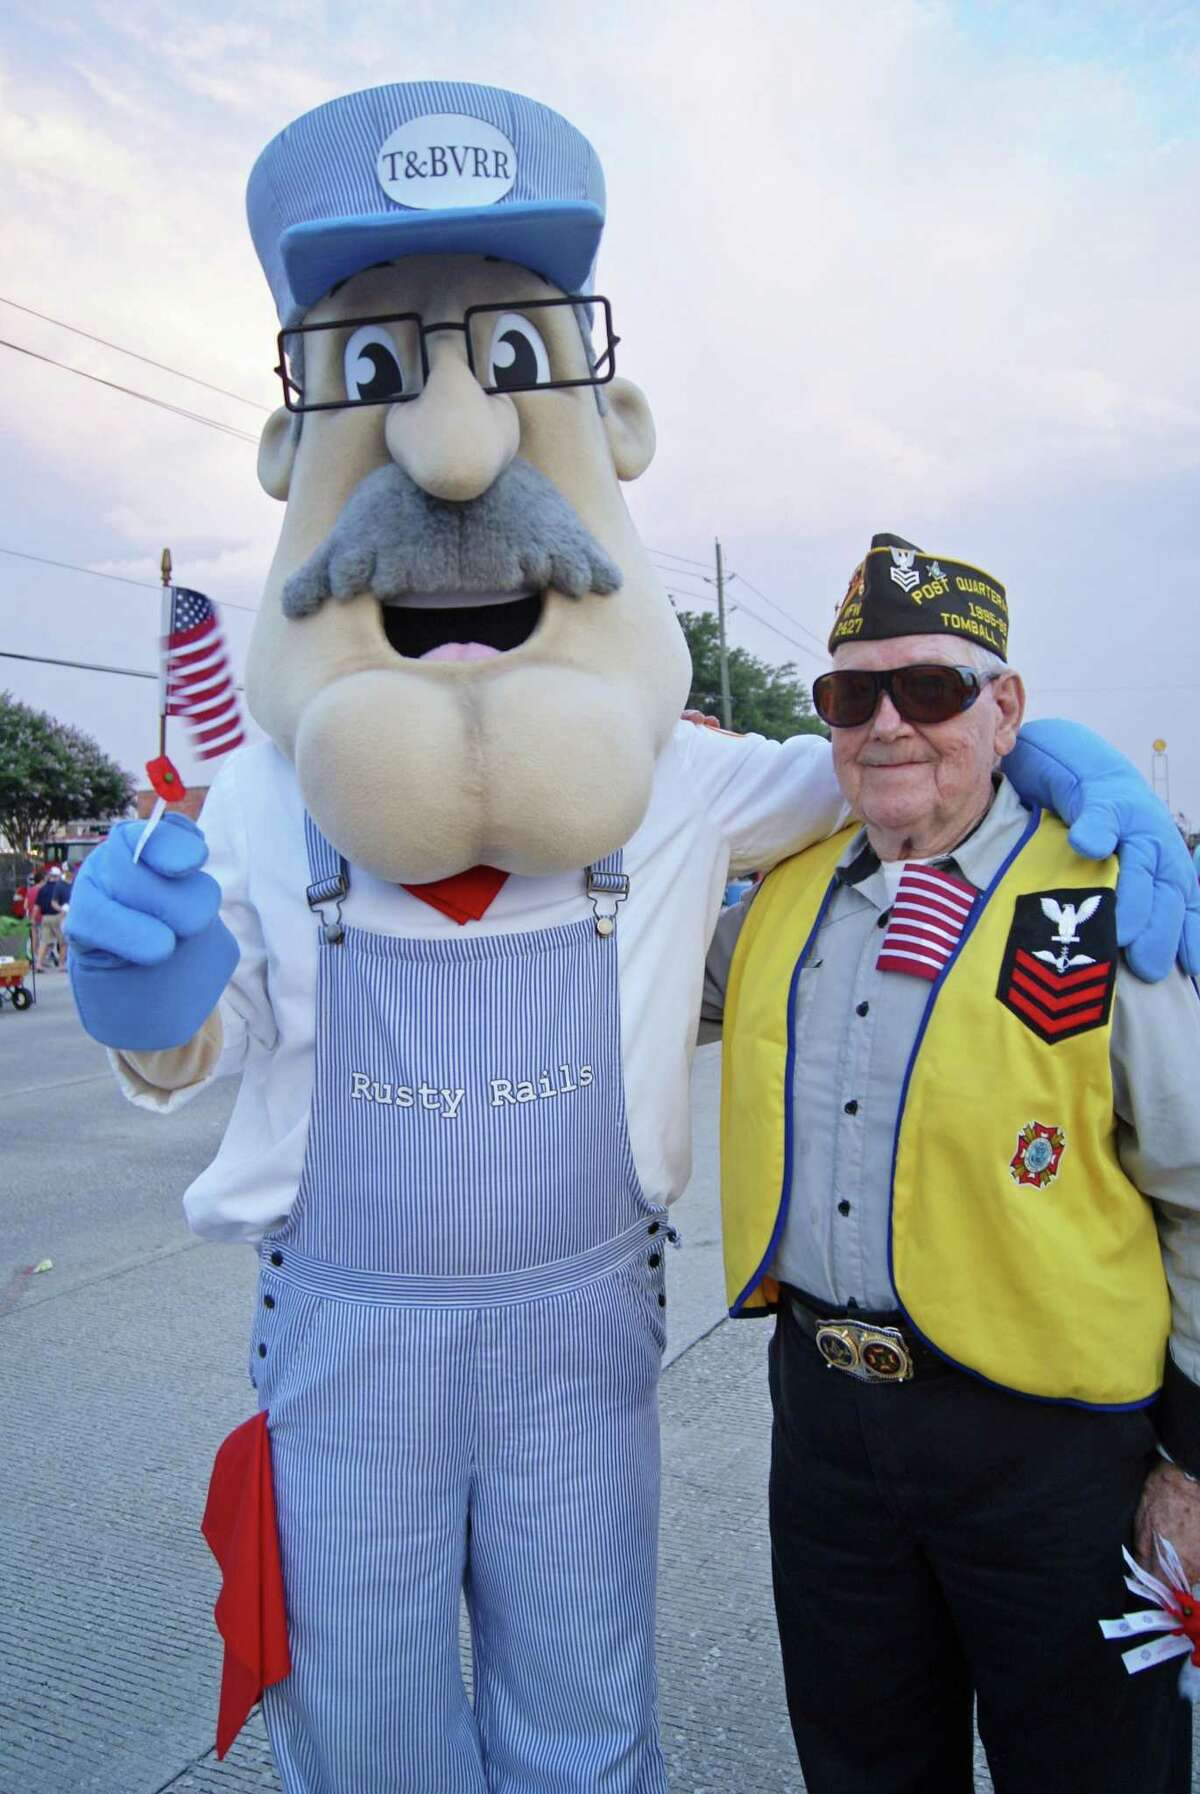 Rusty Rails, the Tomball Railroad Depot's mascot, poses for a photo during Tomball's July 4th Celebration and Street Festival.